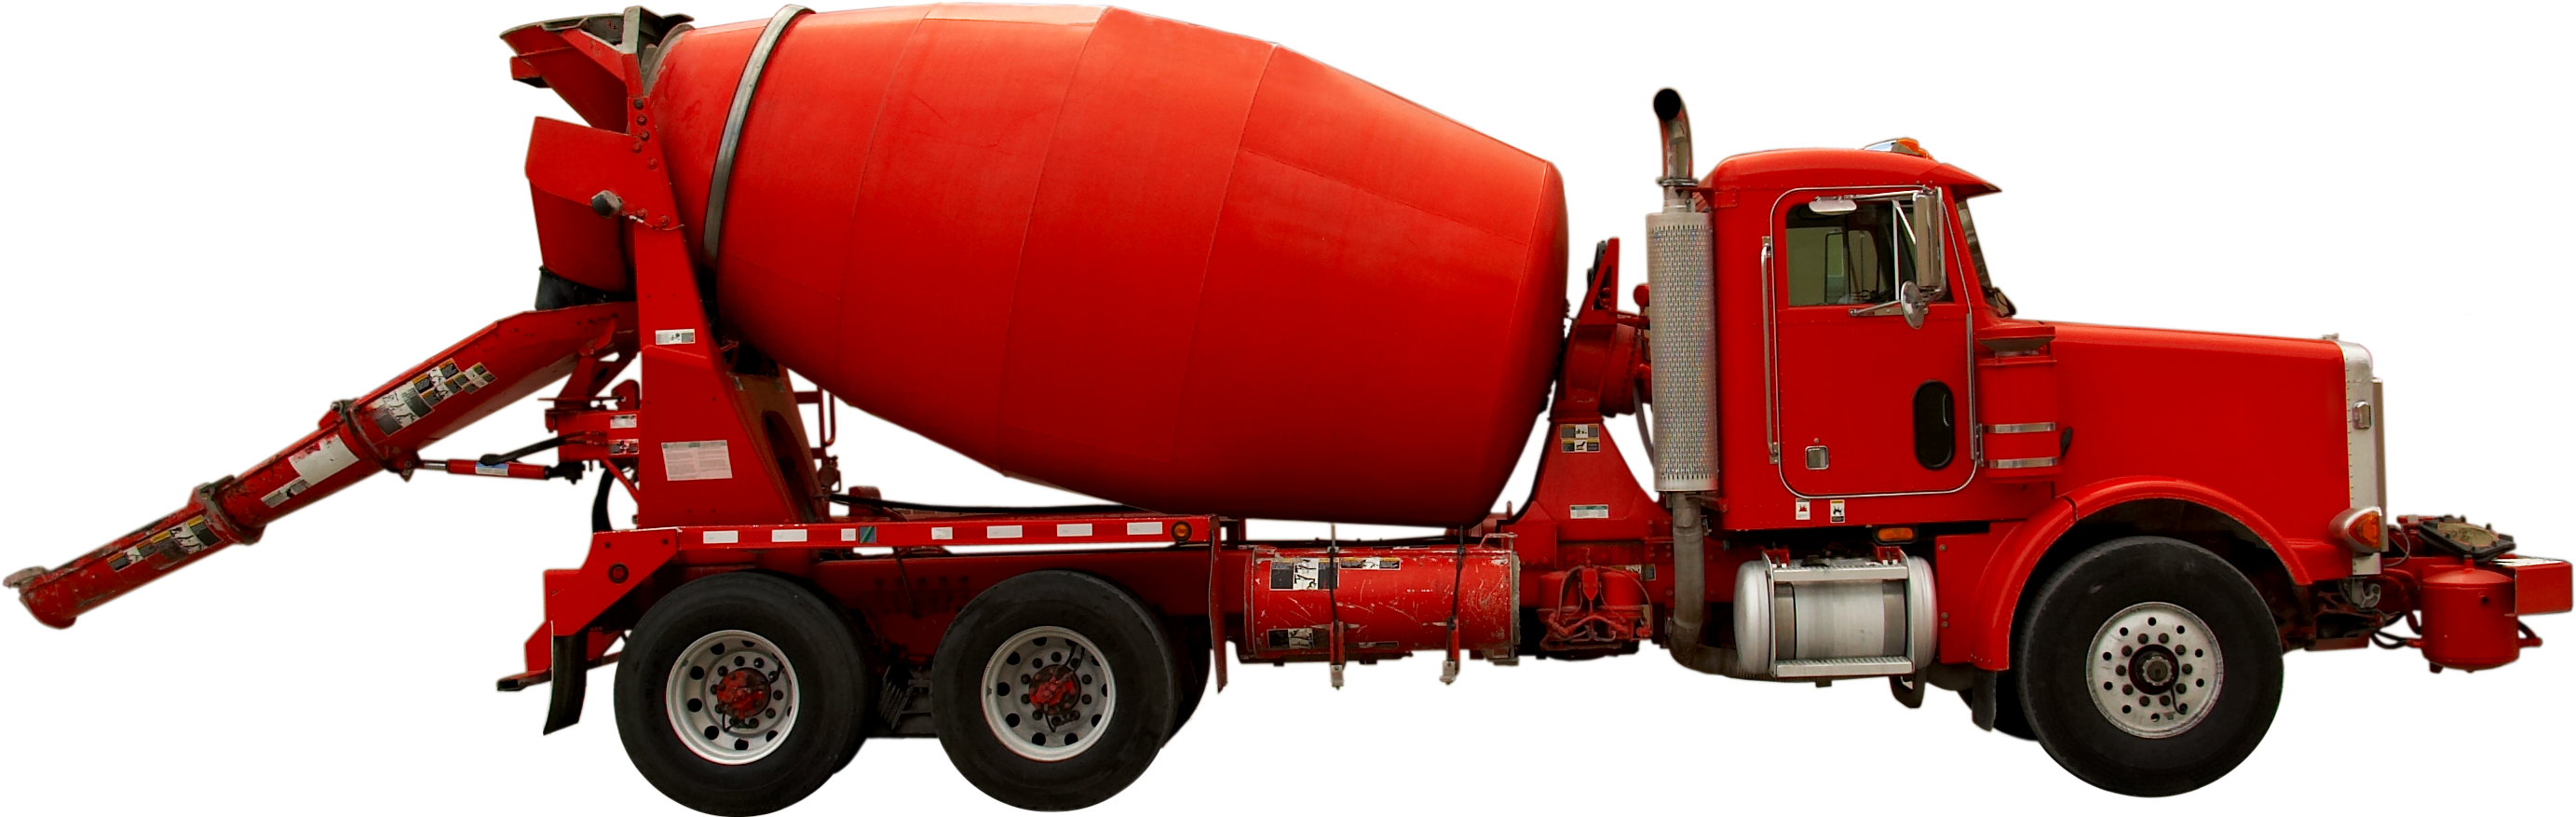 Cement truck png. File red mixer wikimedia